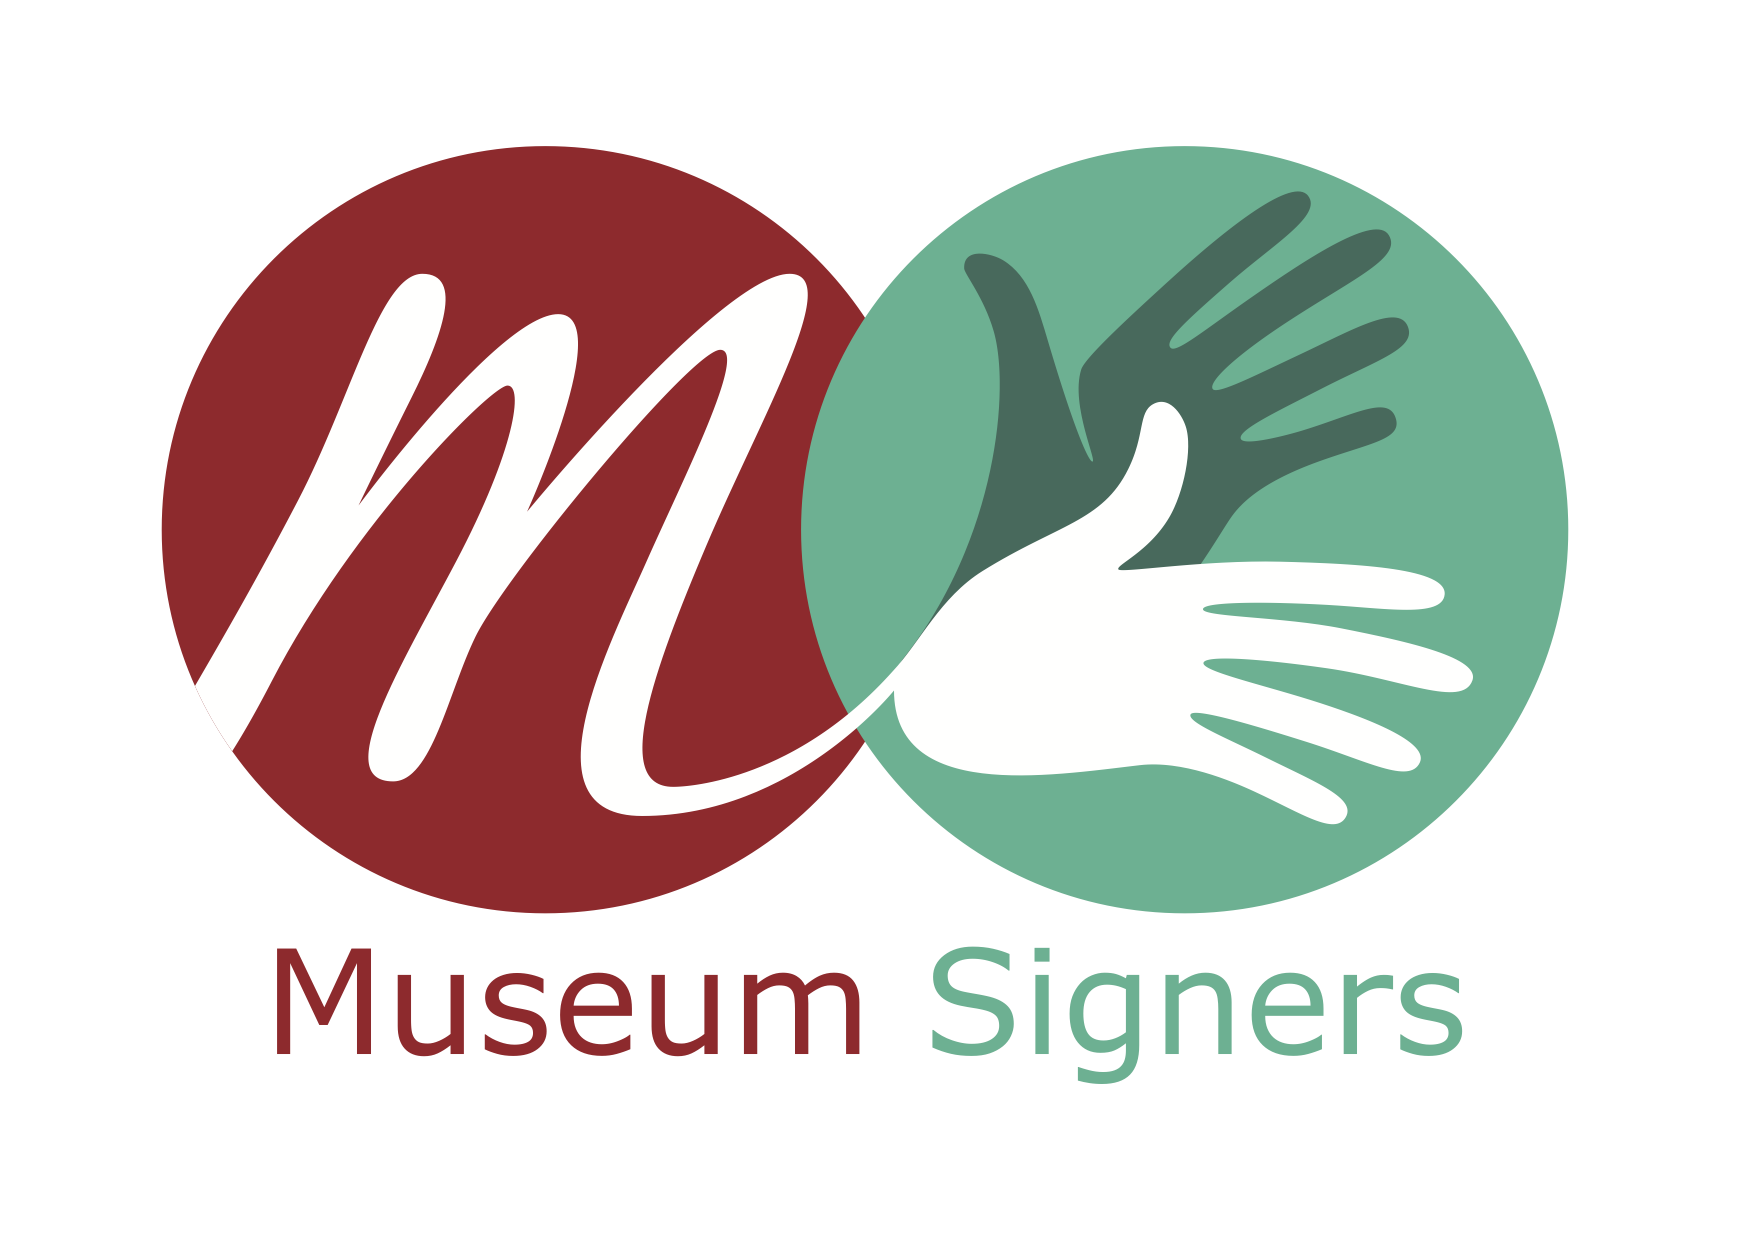 Museum Signers